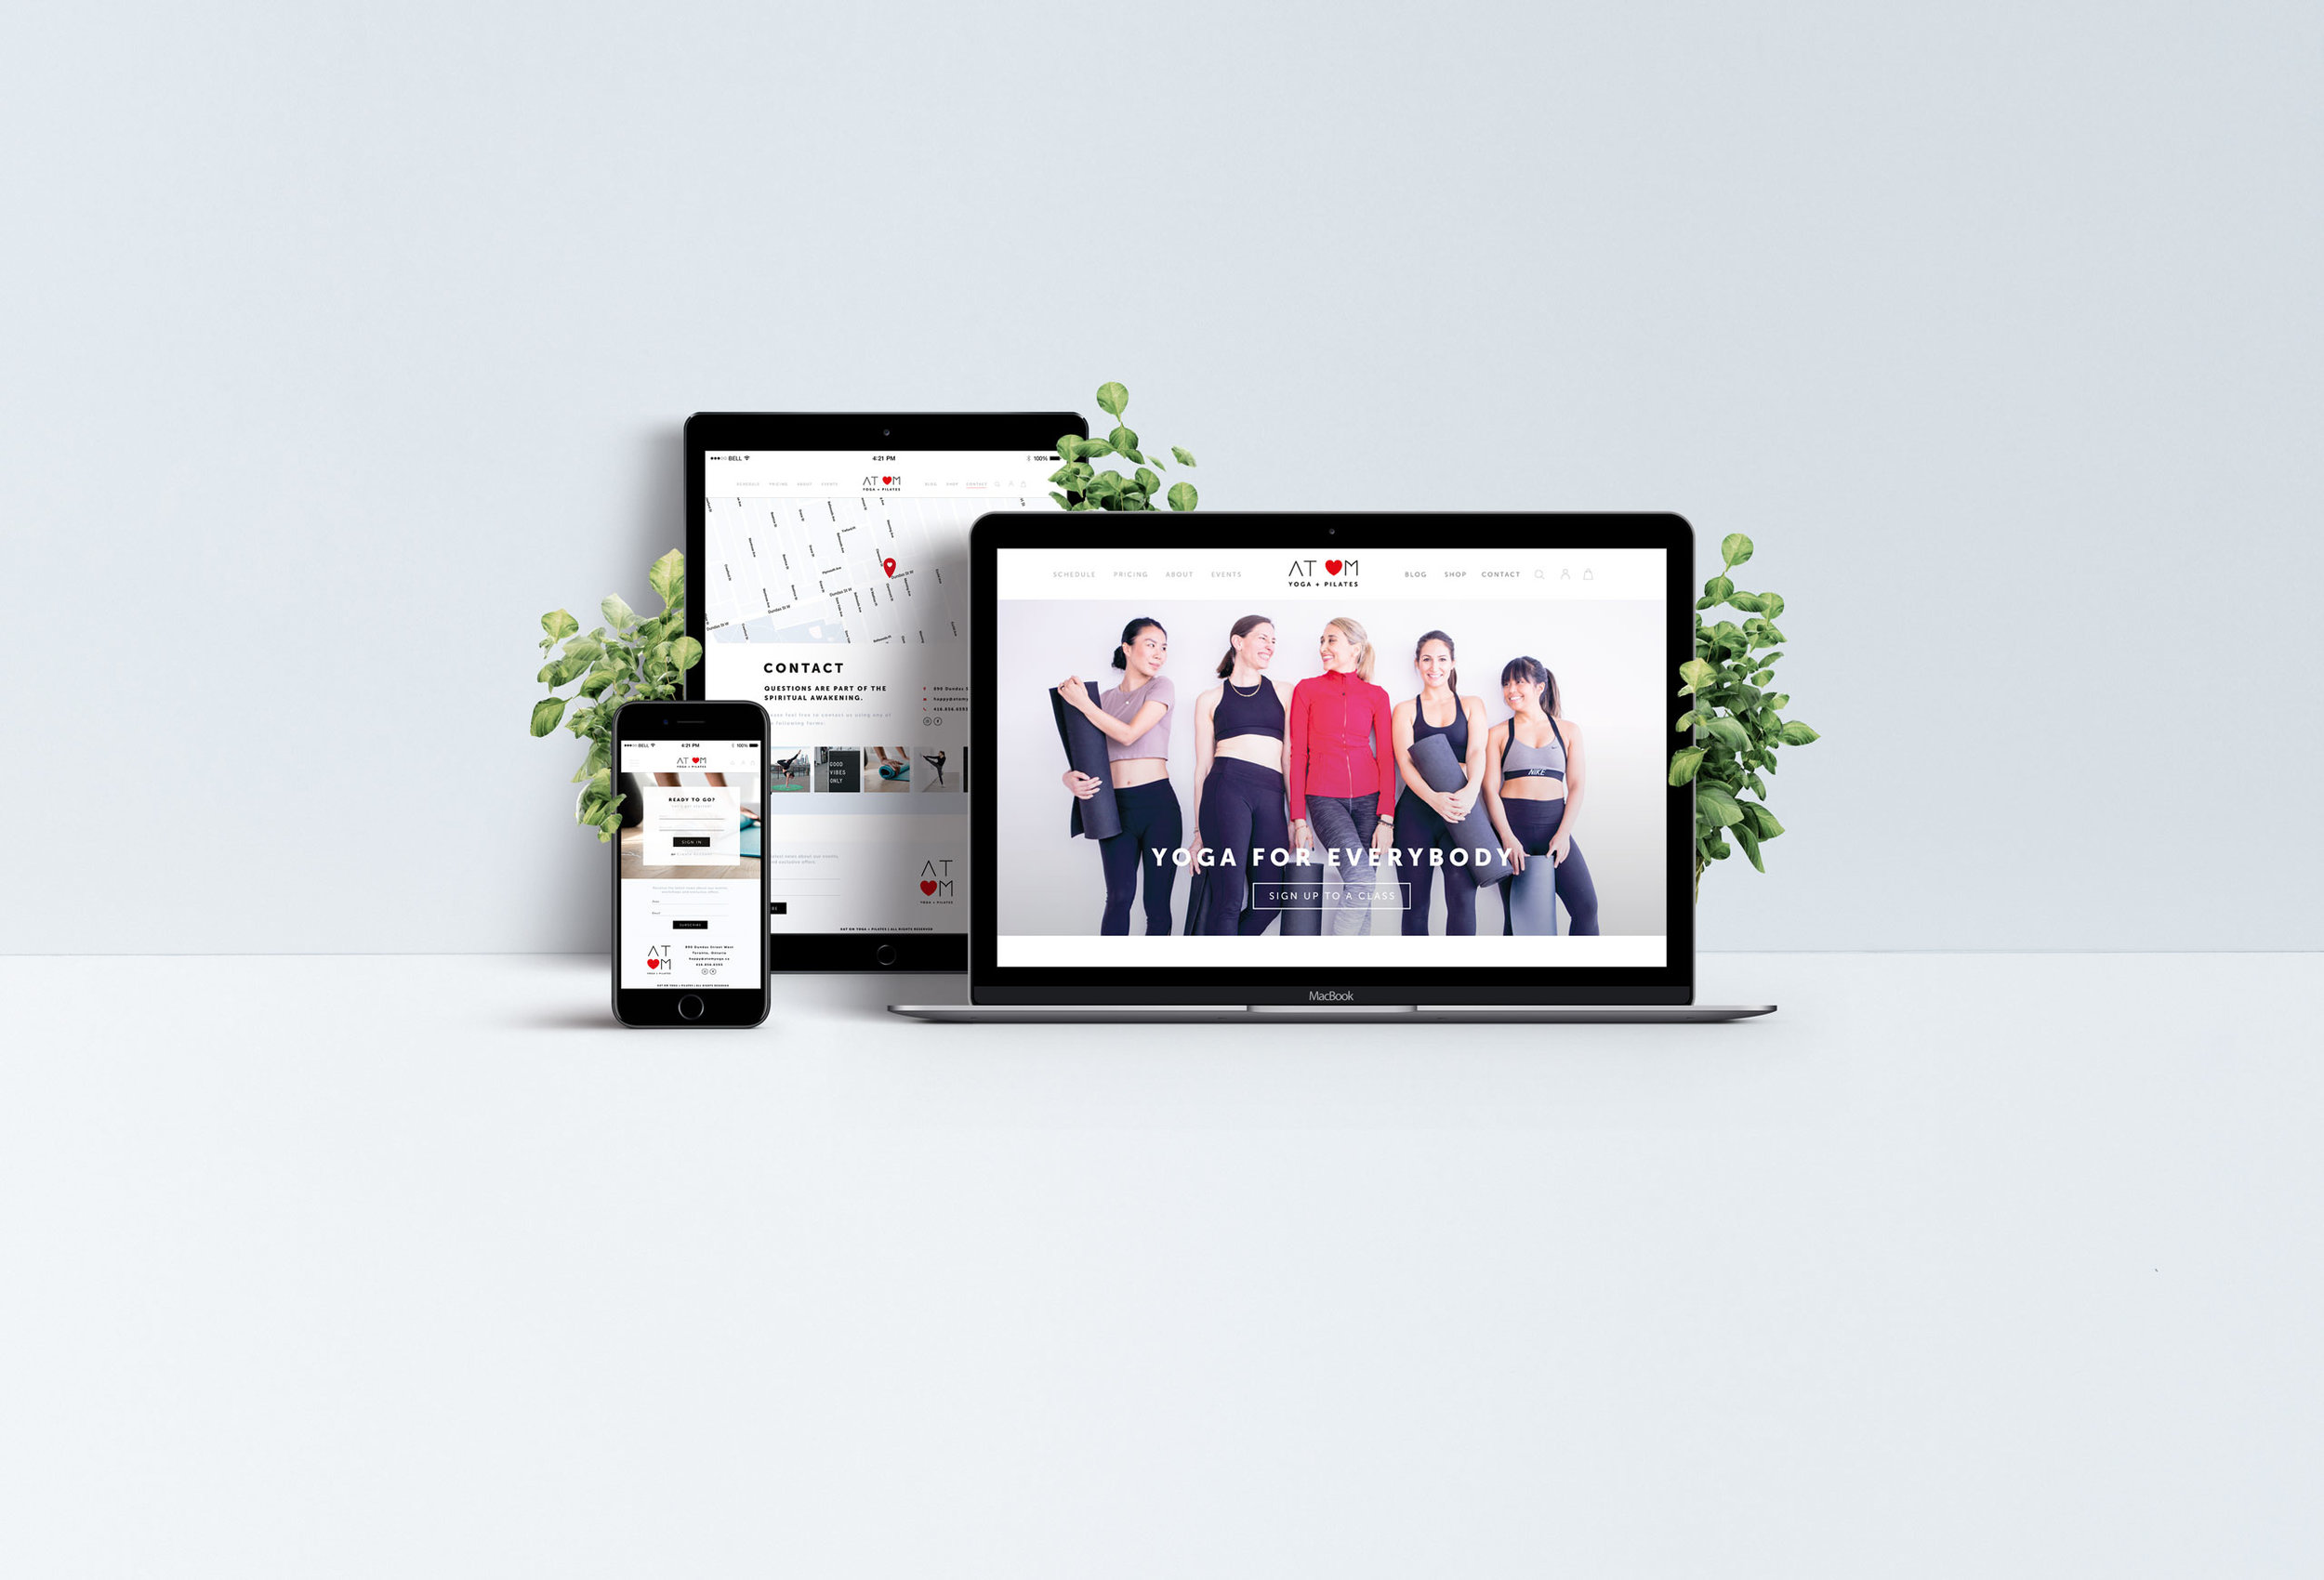 mockup-AT-OM-website.jpg